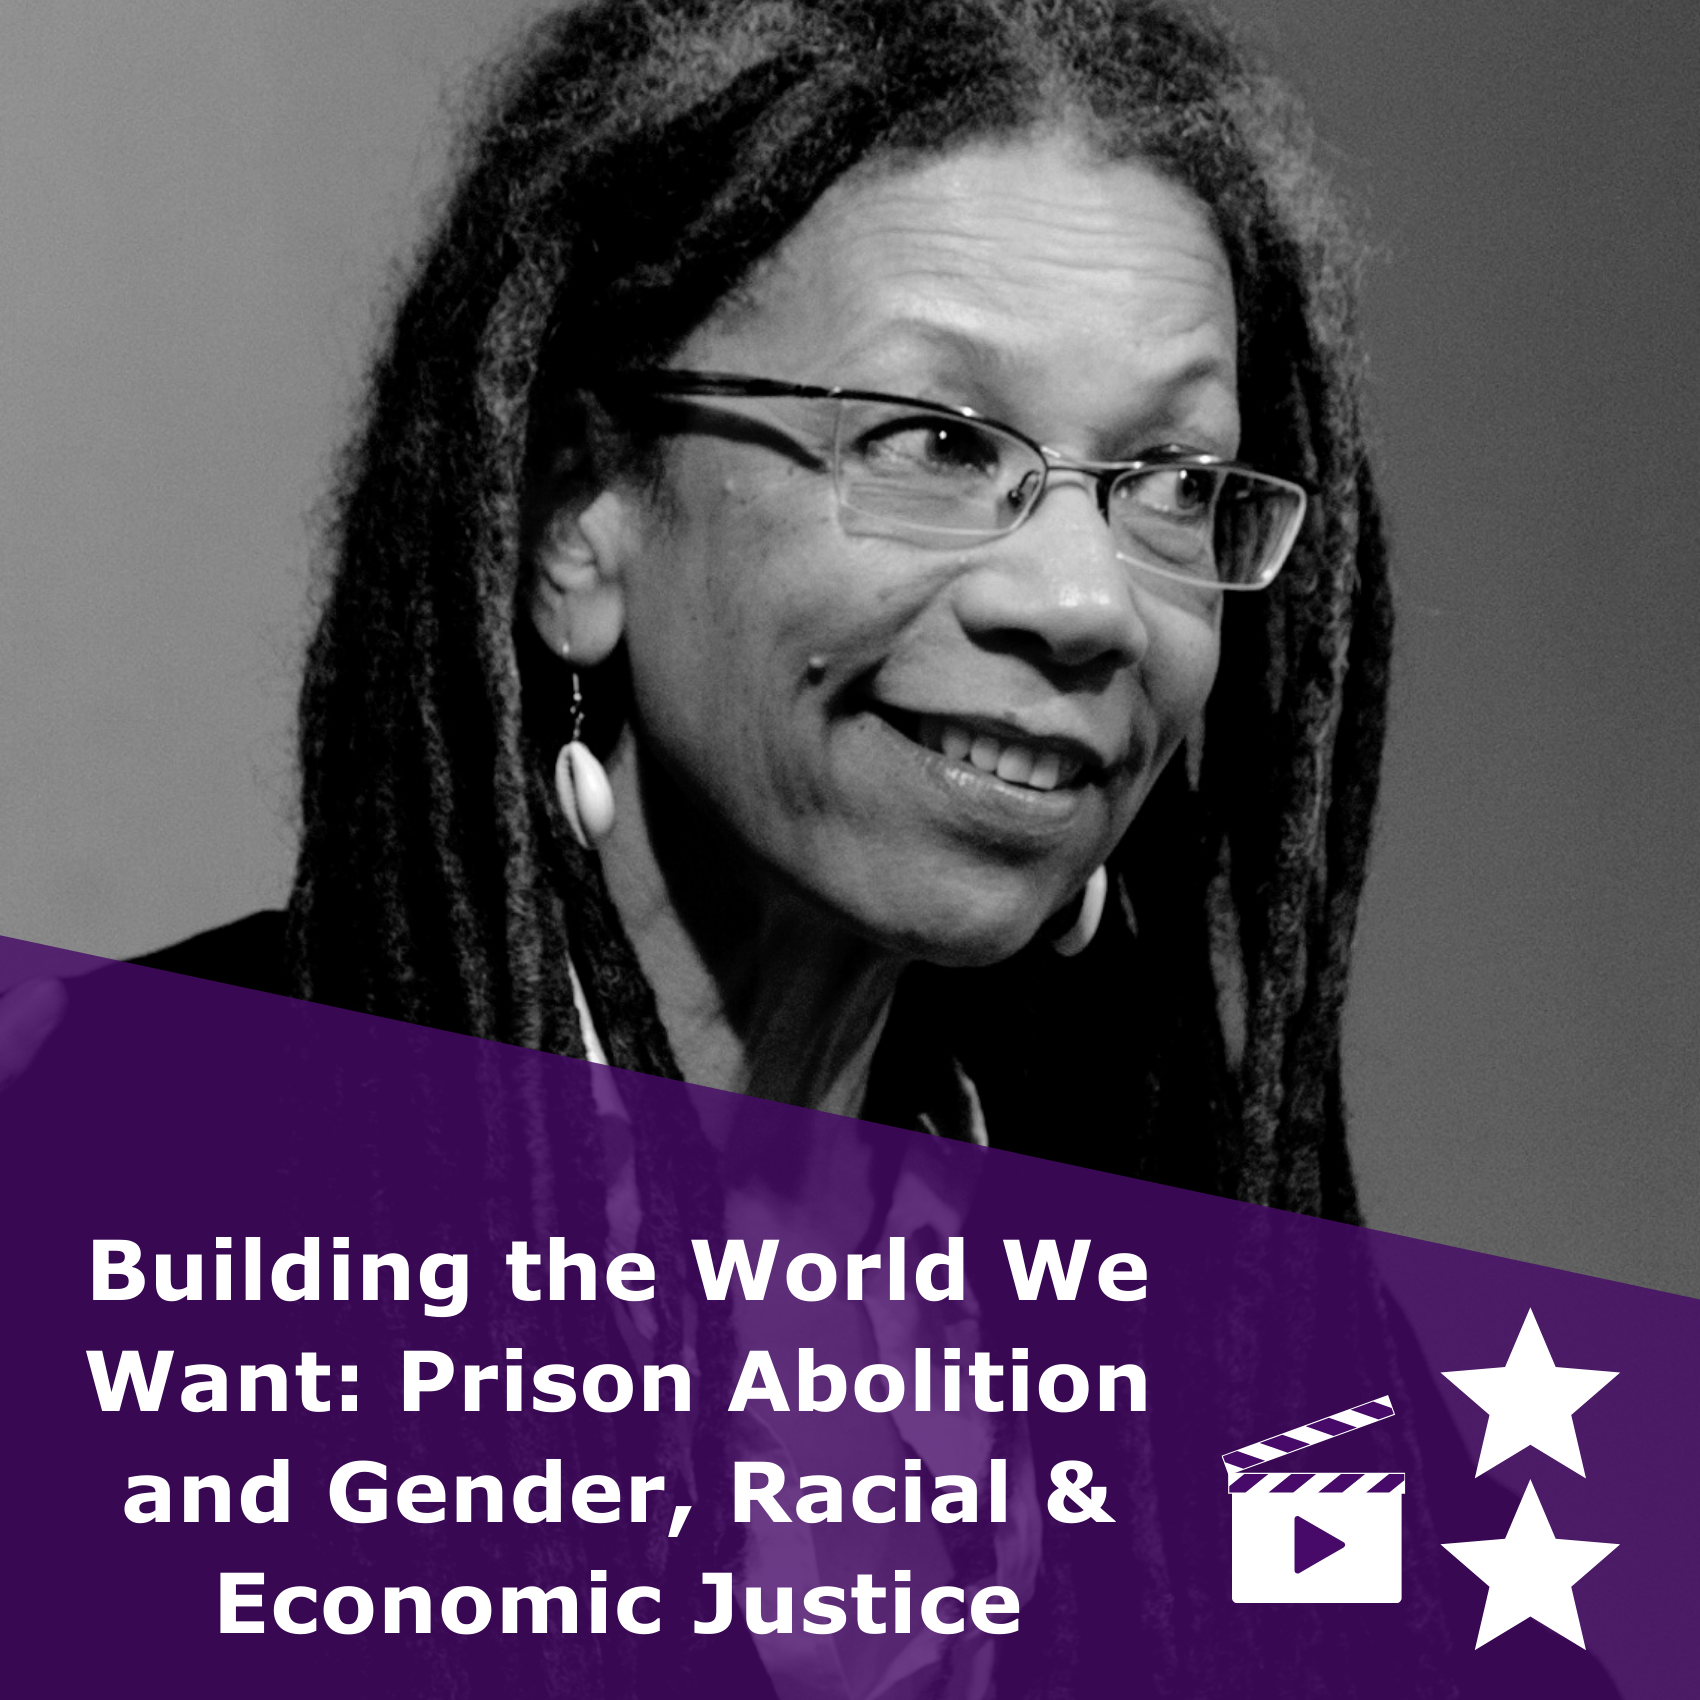 Building the World We Want: Prison Abolition and Gender, Racial & Economic Justice' video, 2 stars